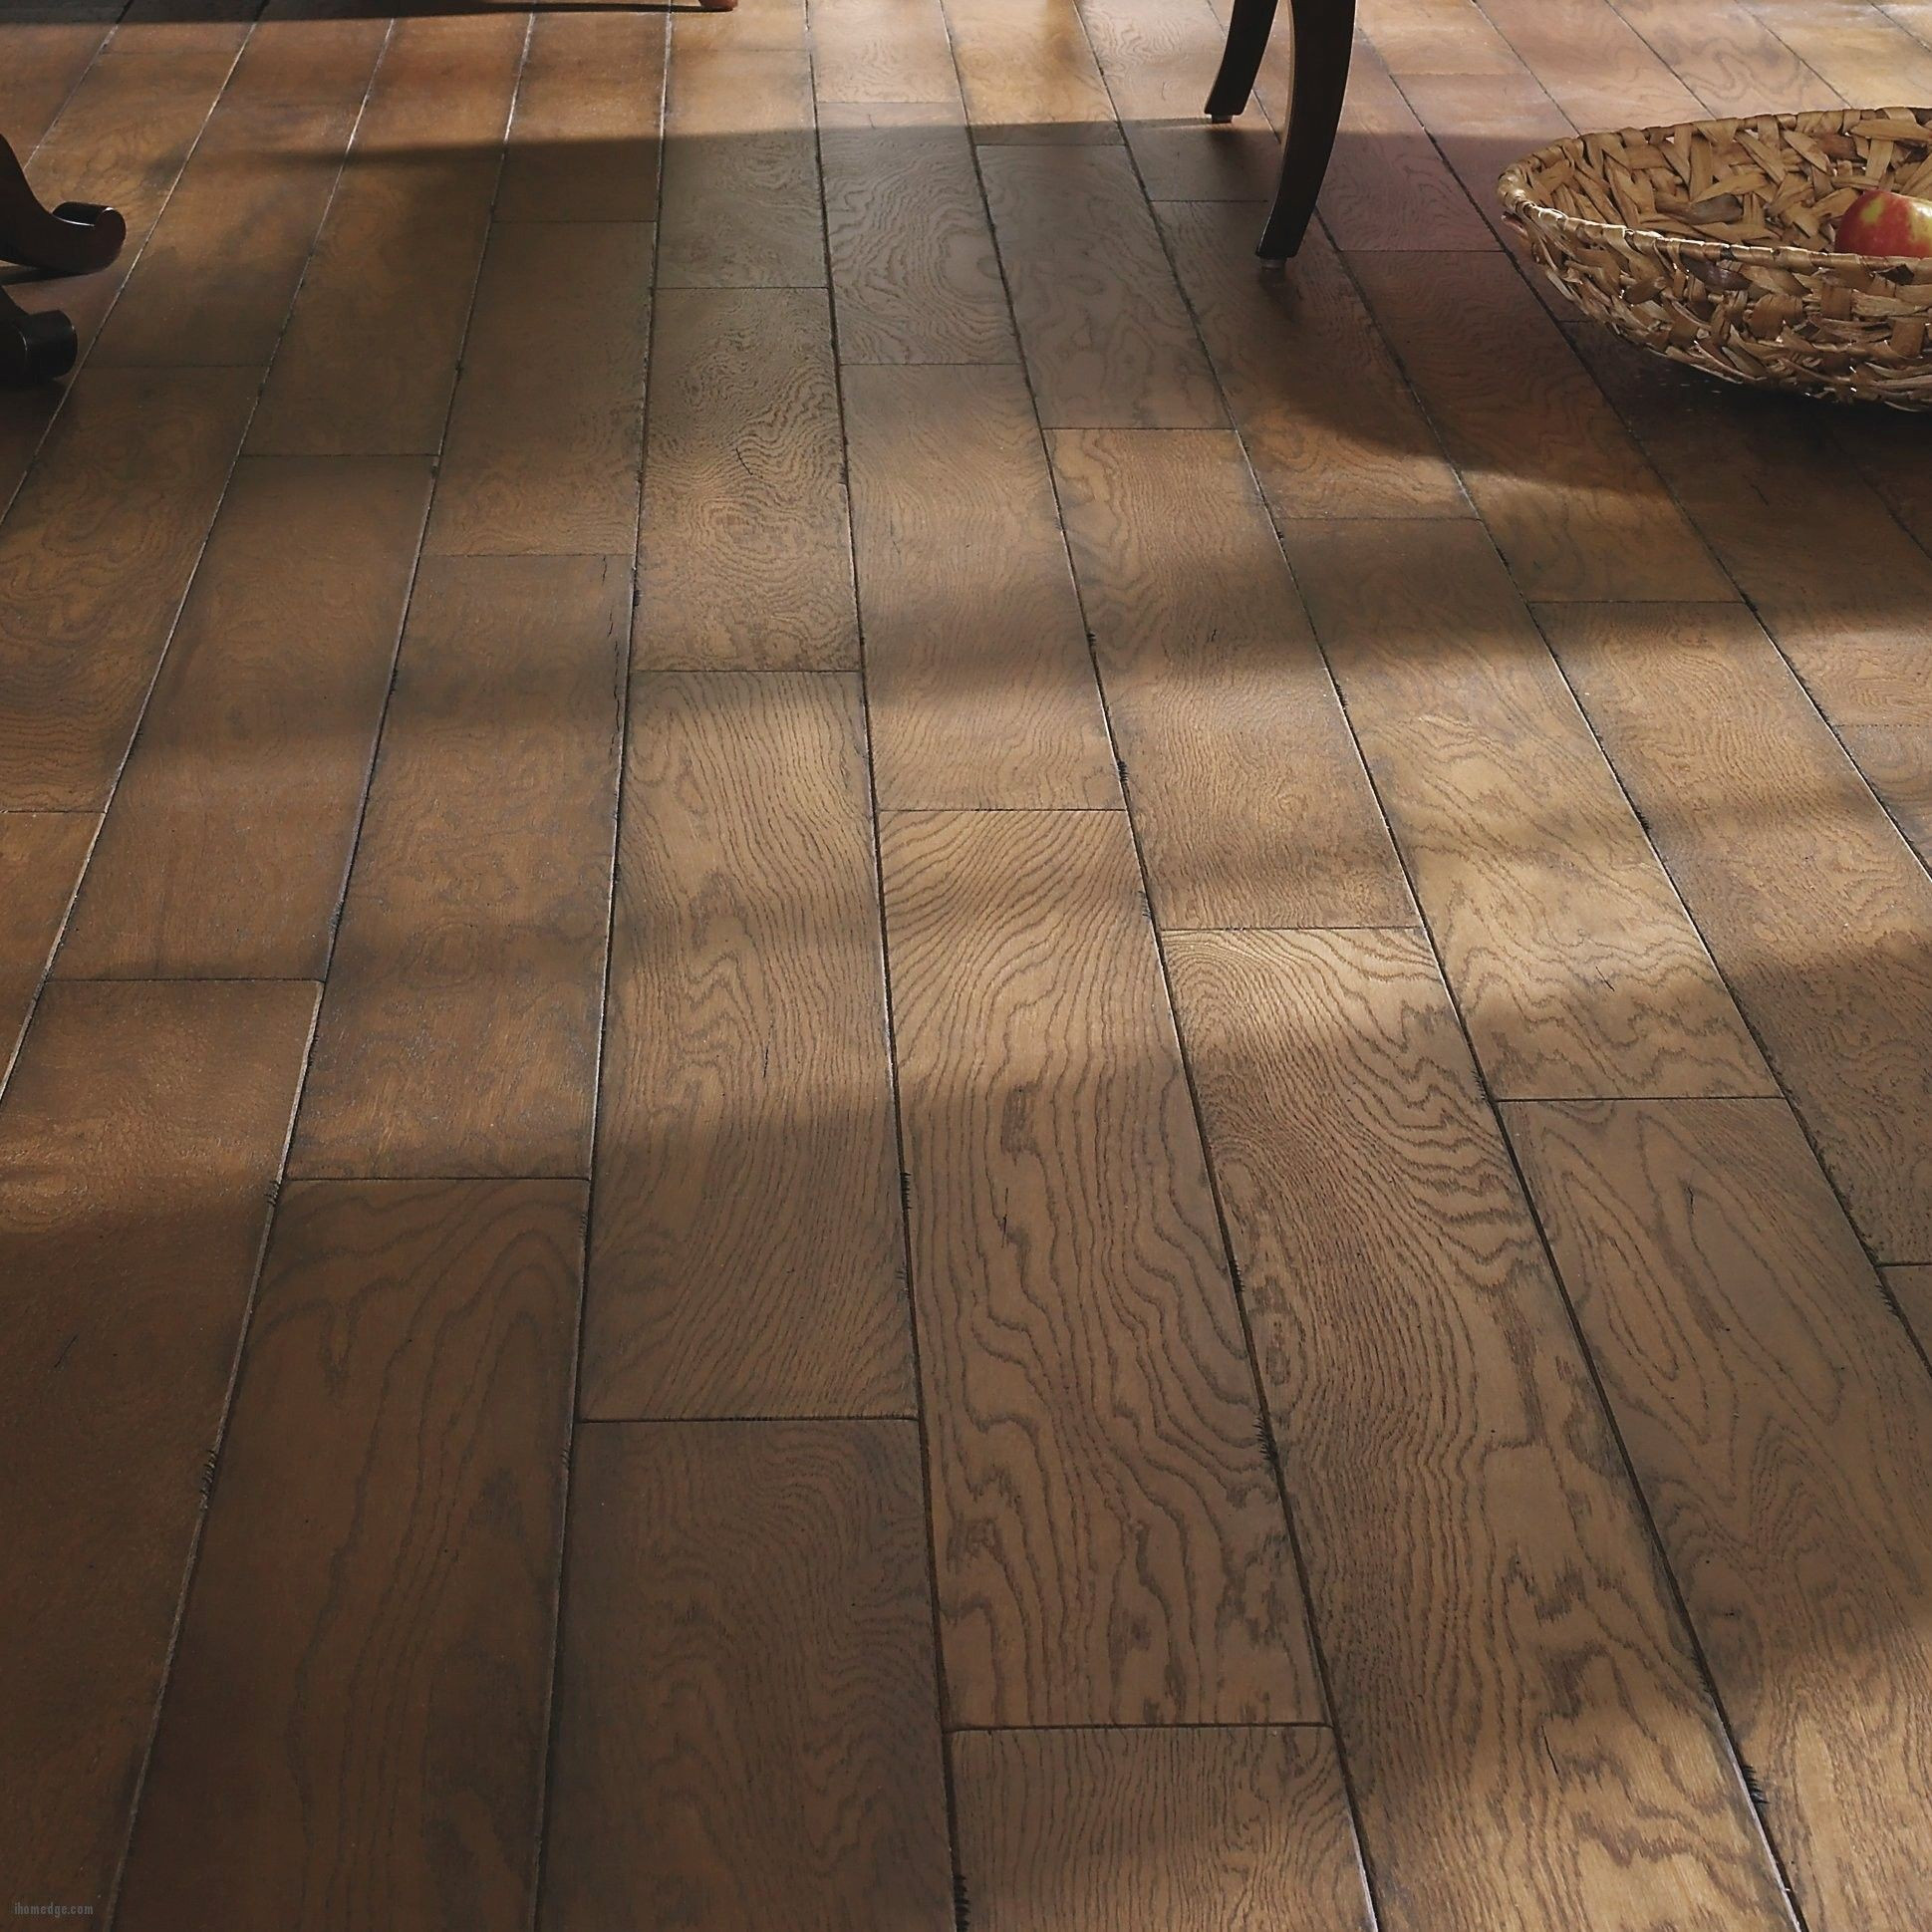 Painted Hardwood Floors Of White Laminate Flooring New Love This It Looks Like Old Chippy Pertaining to Related Post